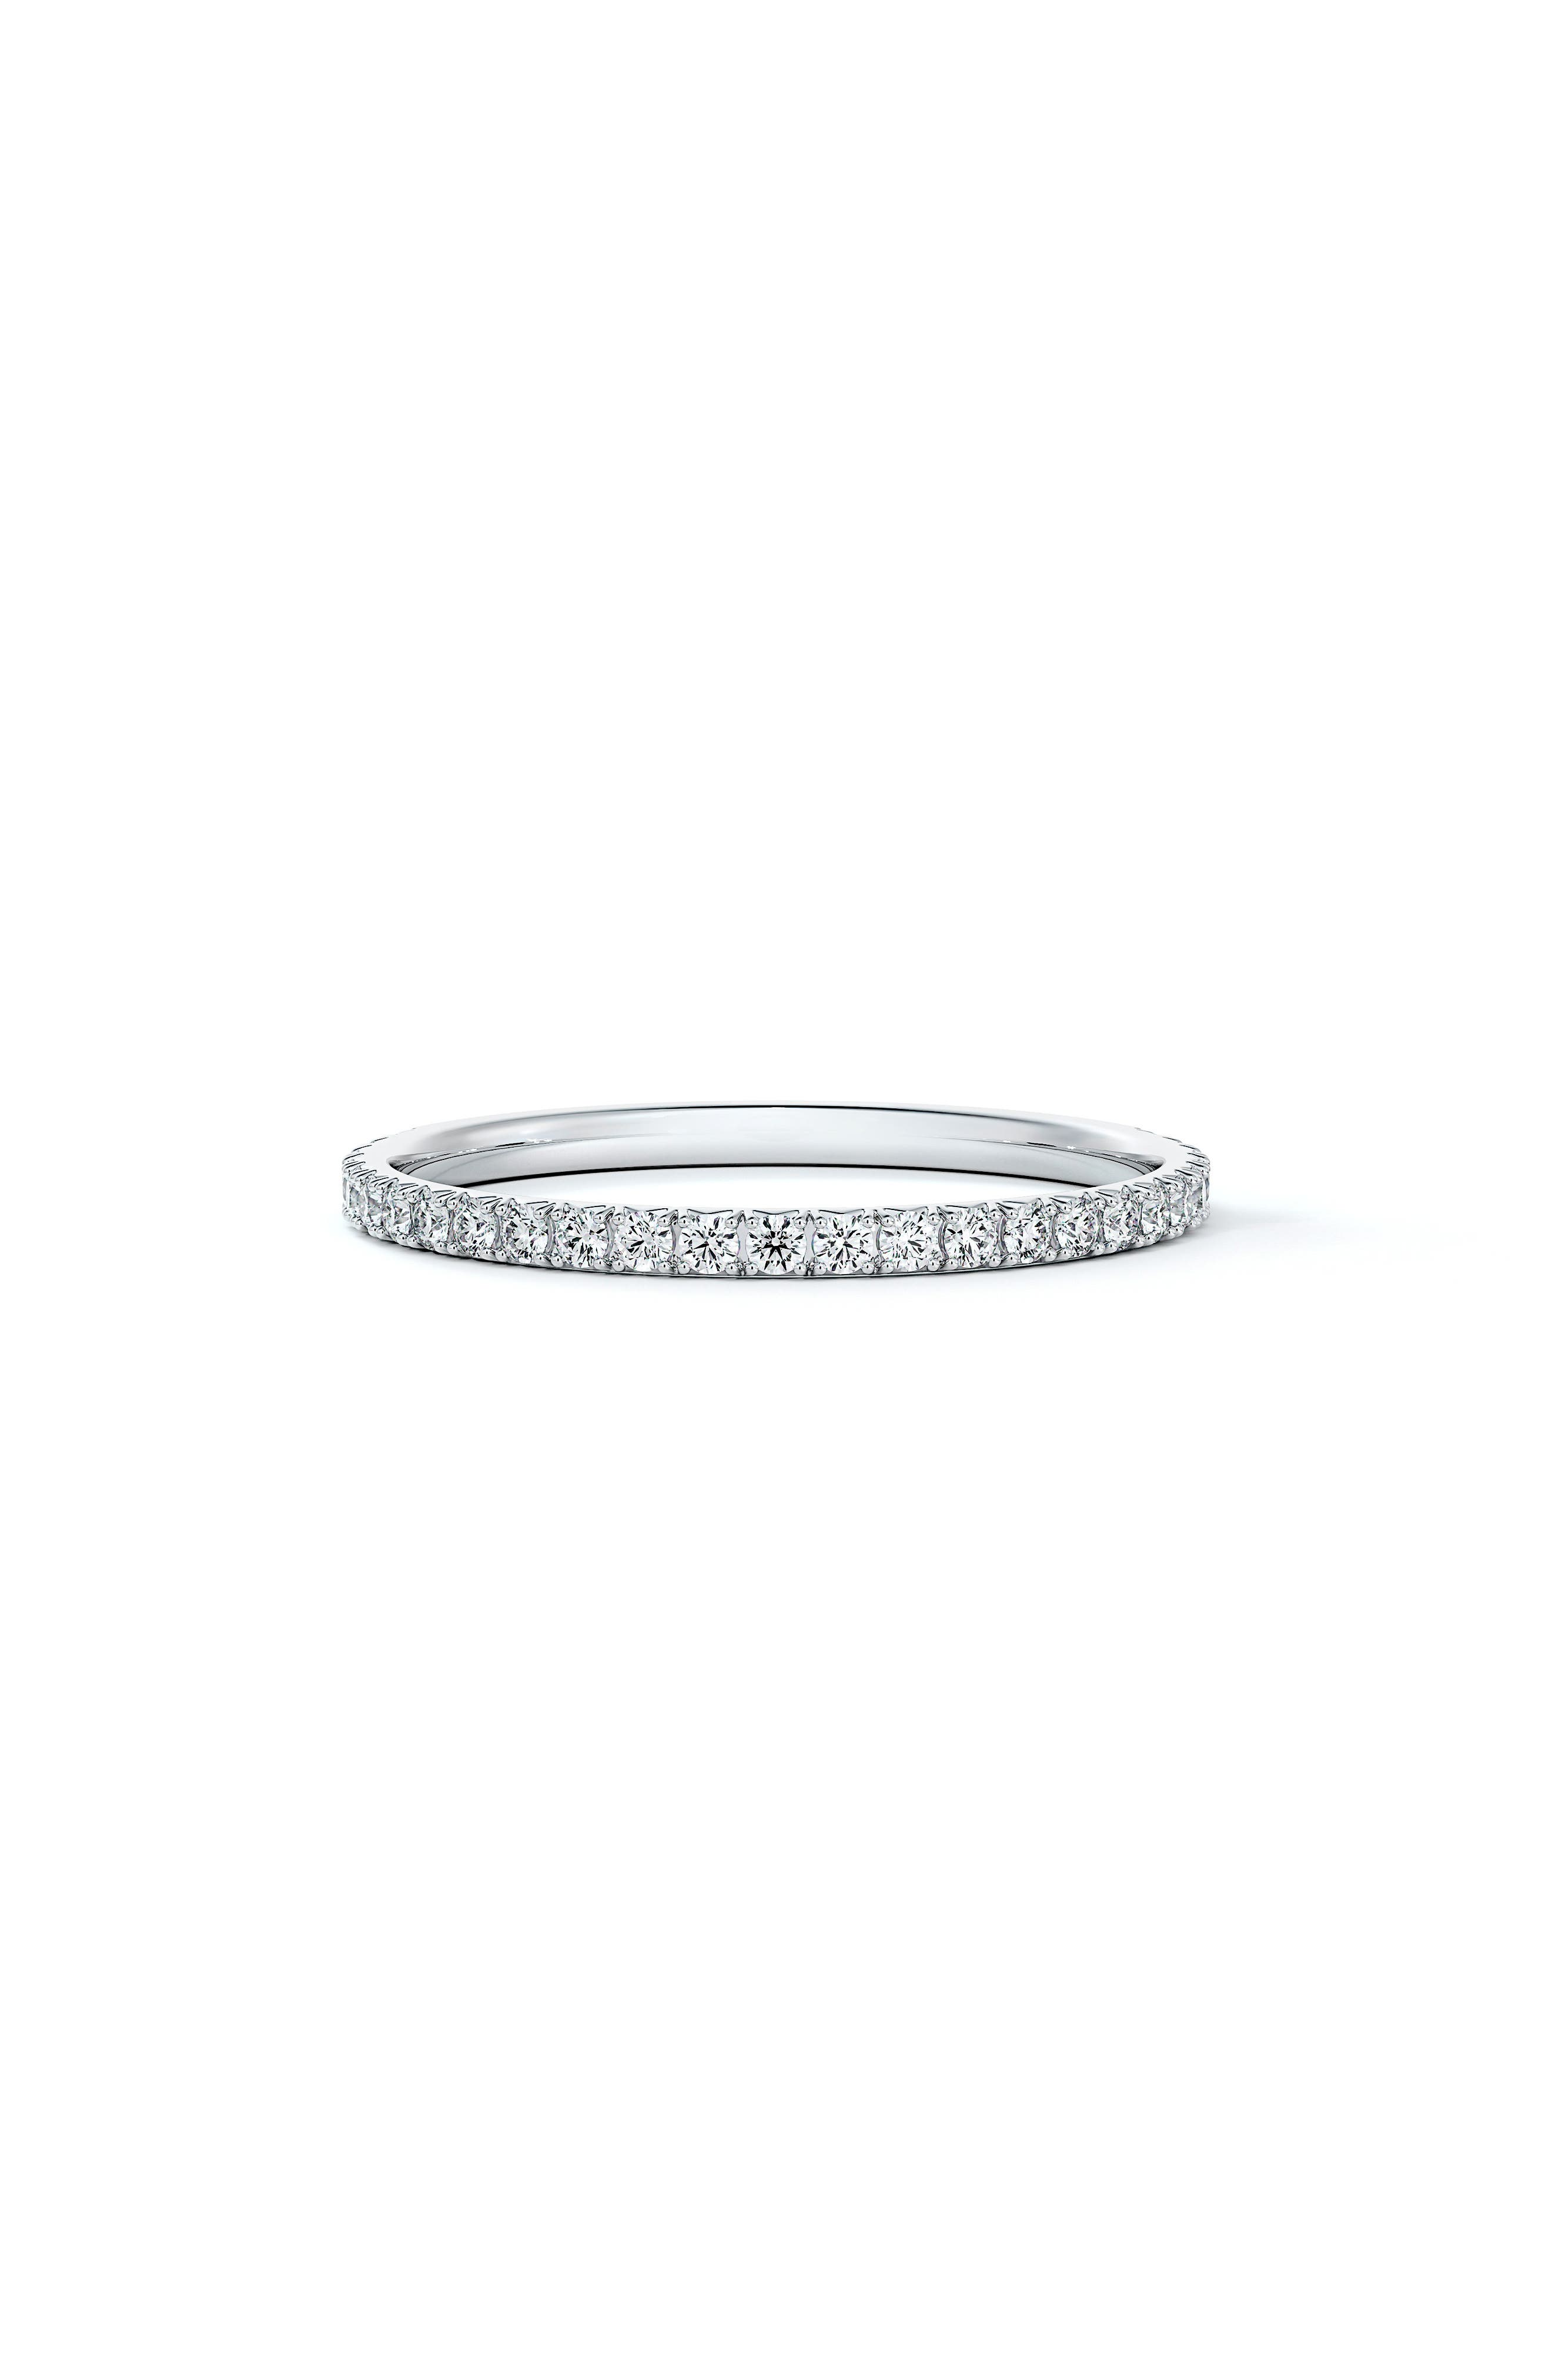 Engagement & Commitment French Pave Diamond Band